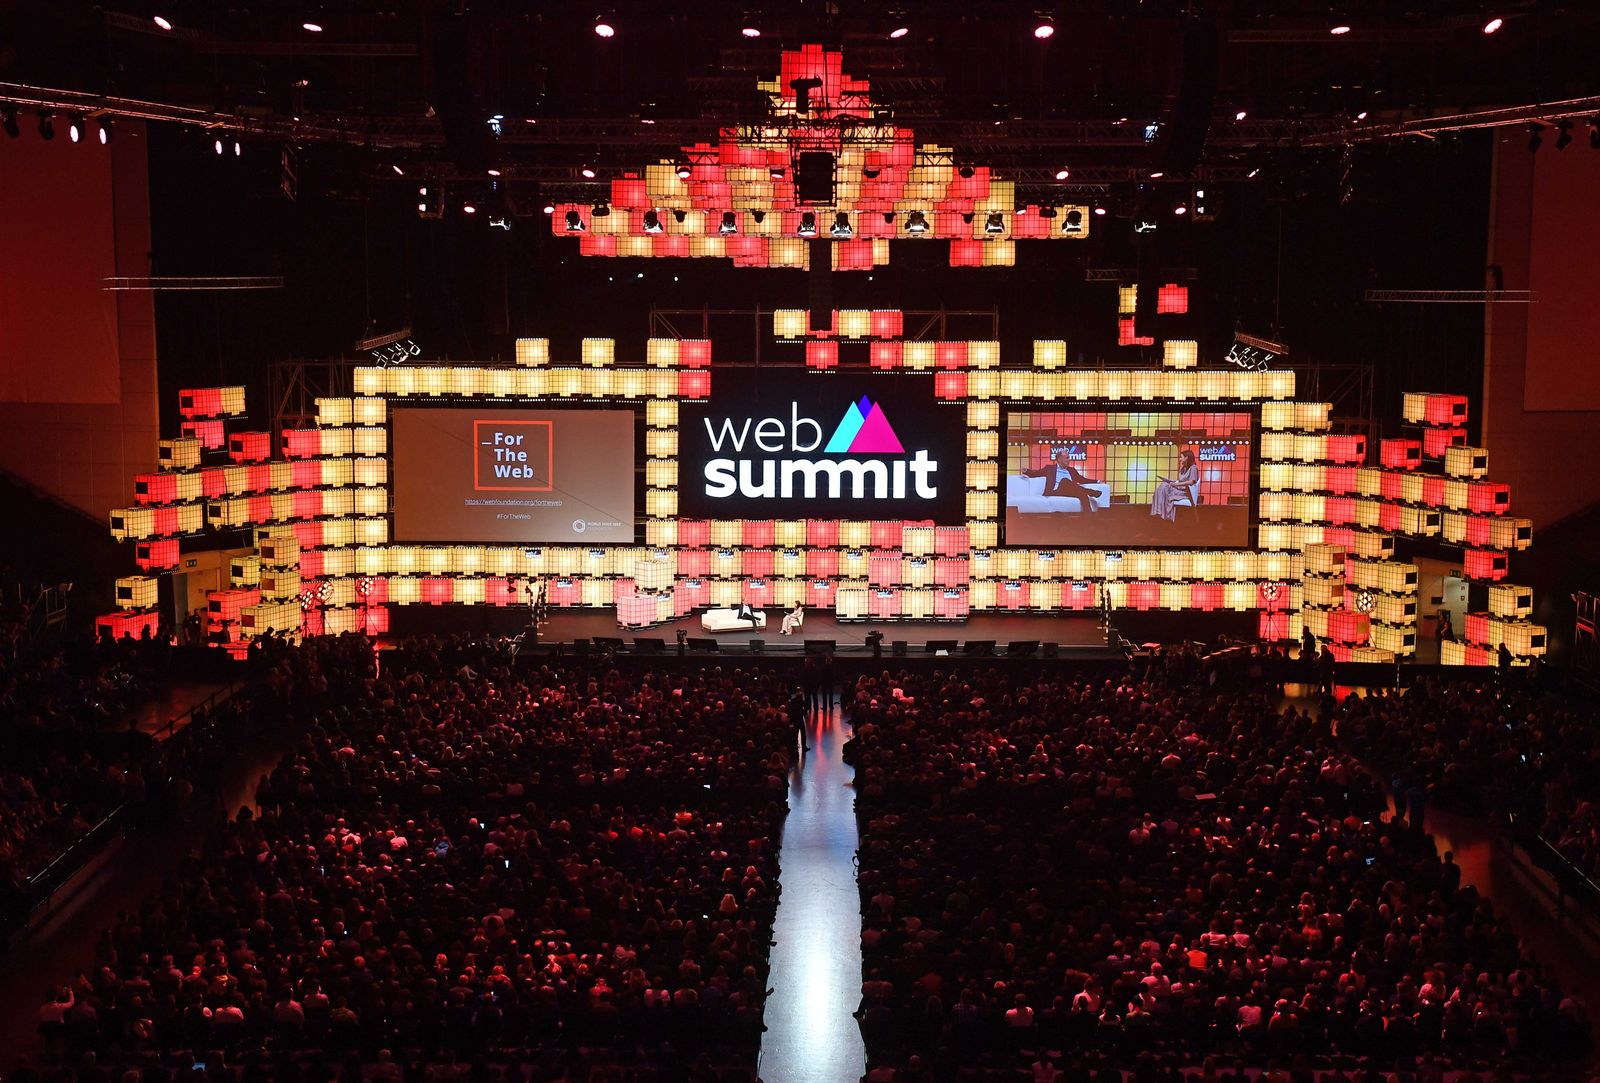 Web Summit/ Tim Berners-Lee